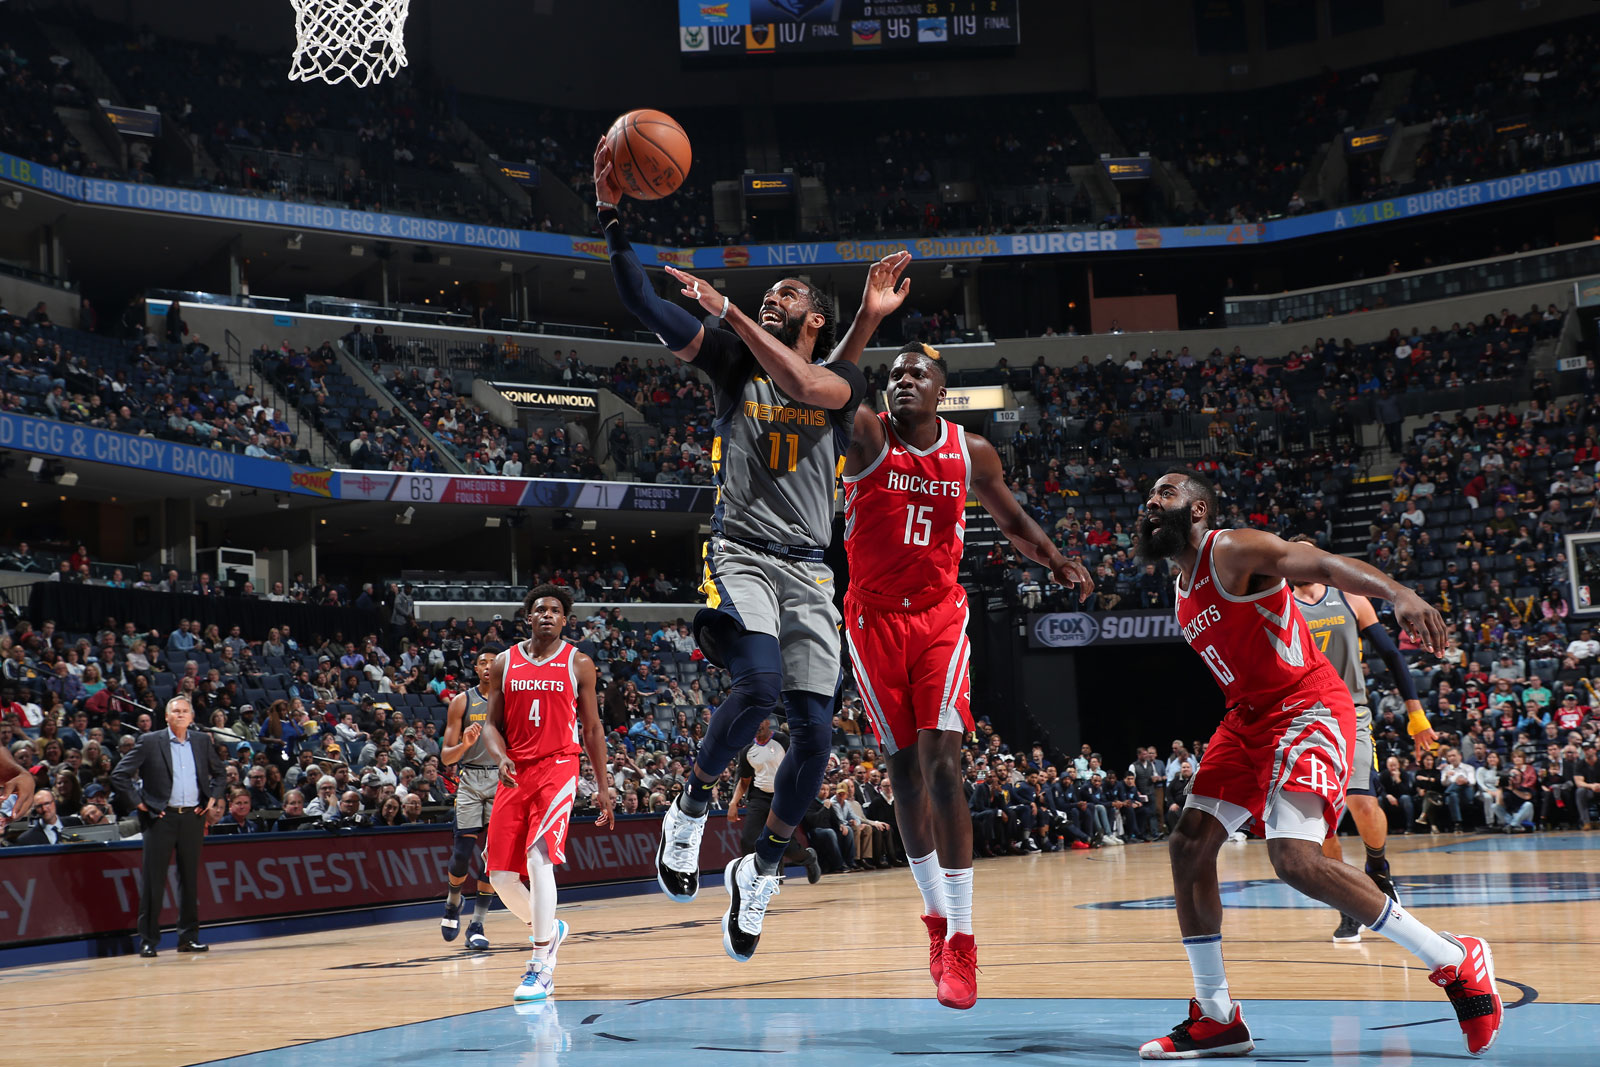 Mike Conley #11 of the Memphis Grizzlies shoots the ball against the Houston Rockets on March 20, 2019 at FedExForum in Memphis, Tennessee.